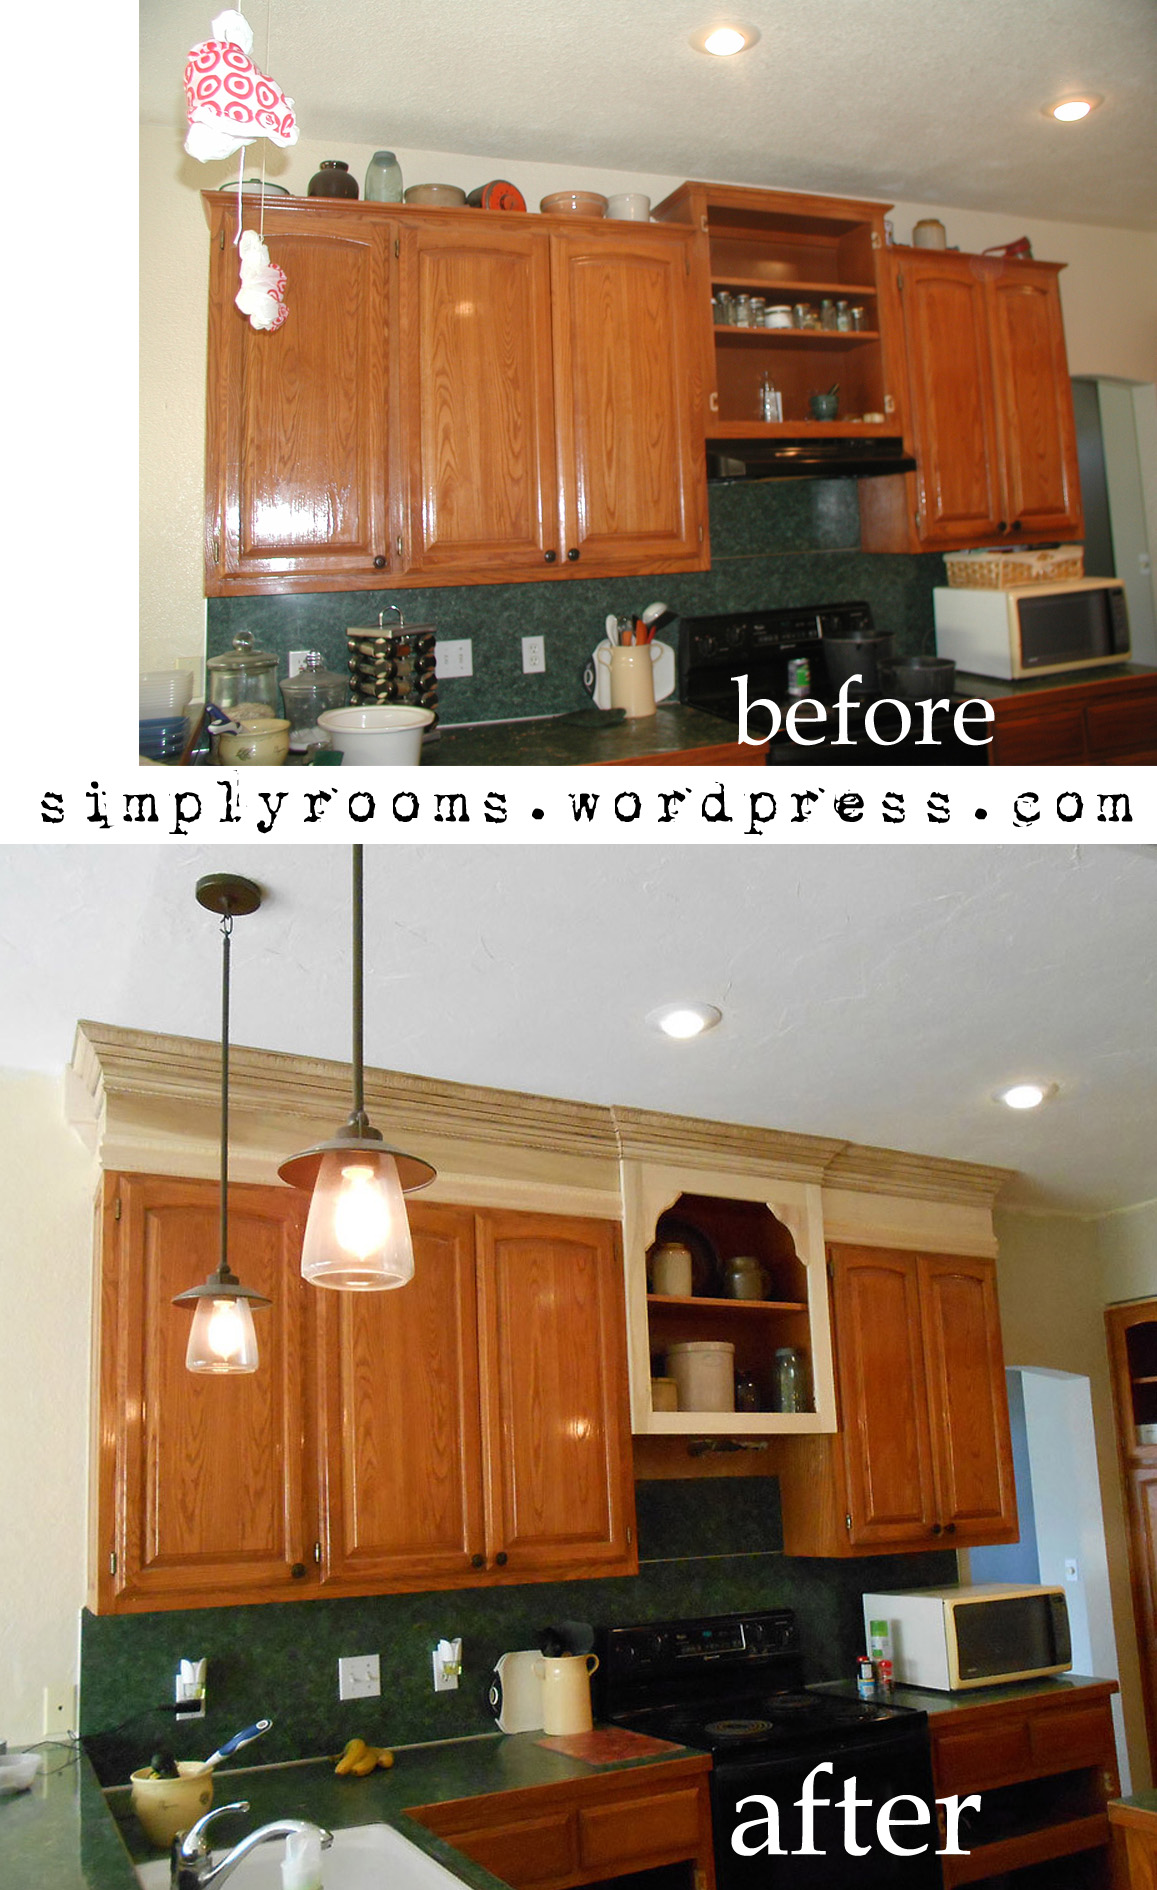 Diy Extend Kitchen Cabinets Project Making An Upper Wall Cabinet Taller Kitchen